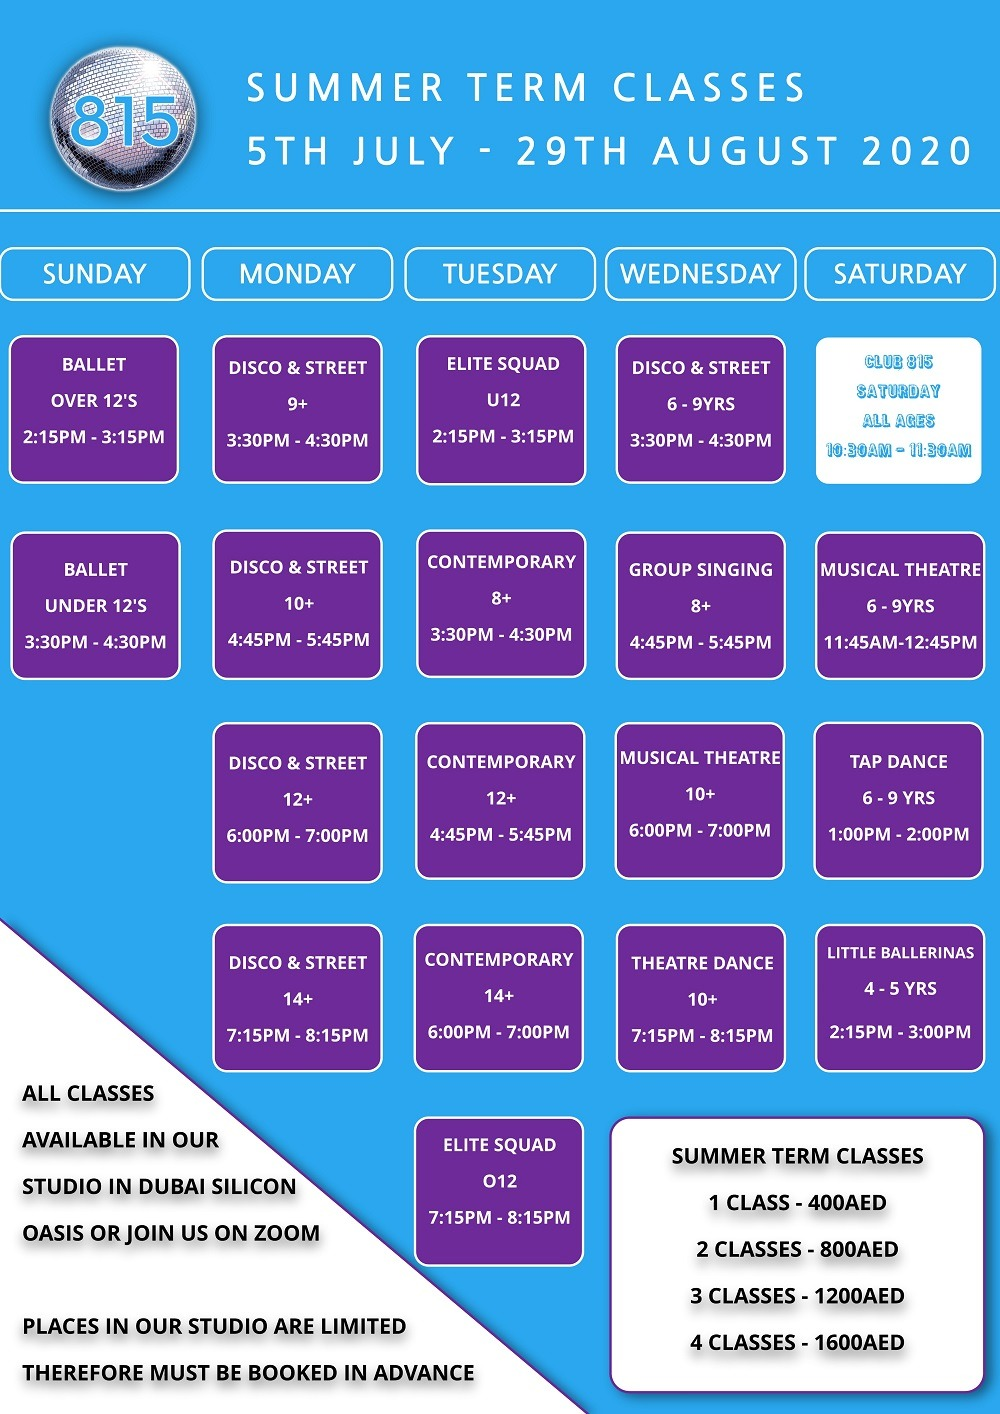 Summer Dance Classes in Dubai Silicon Oasis with fees